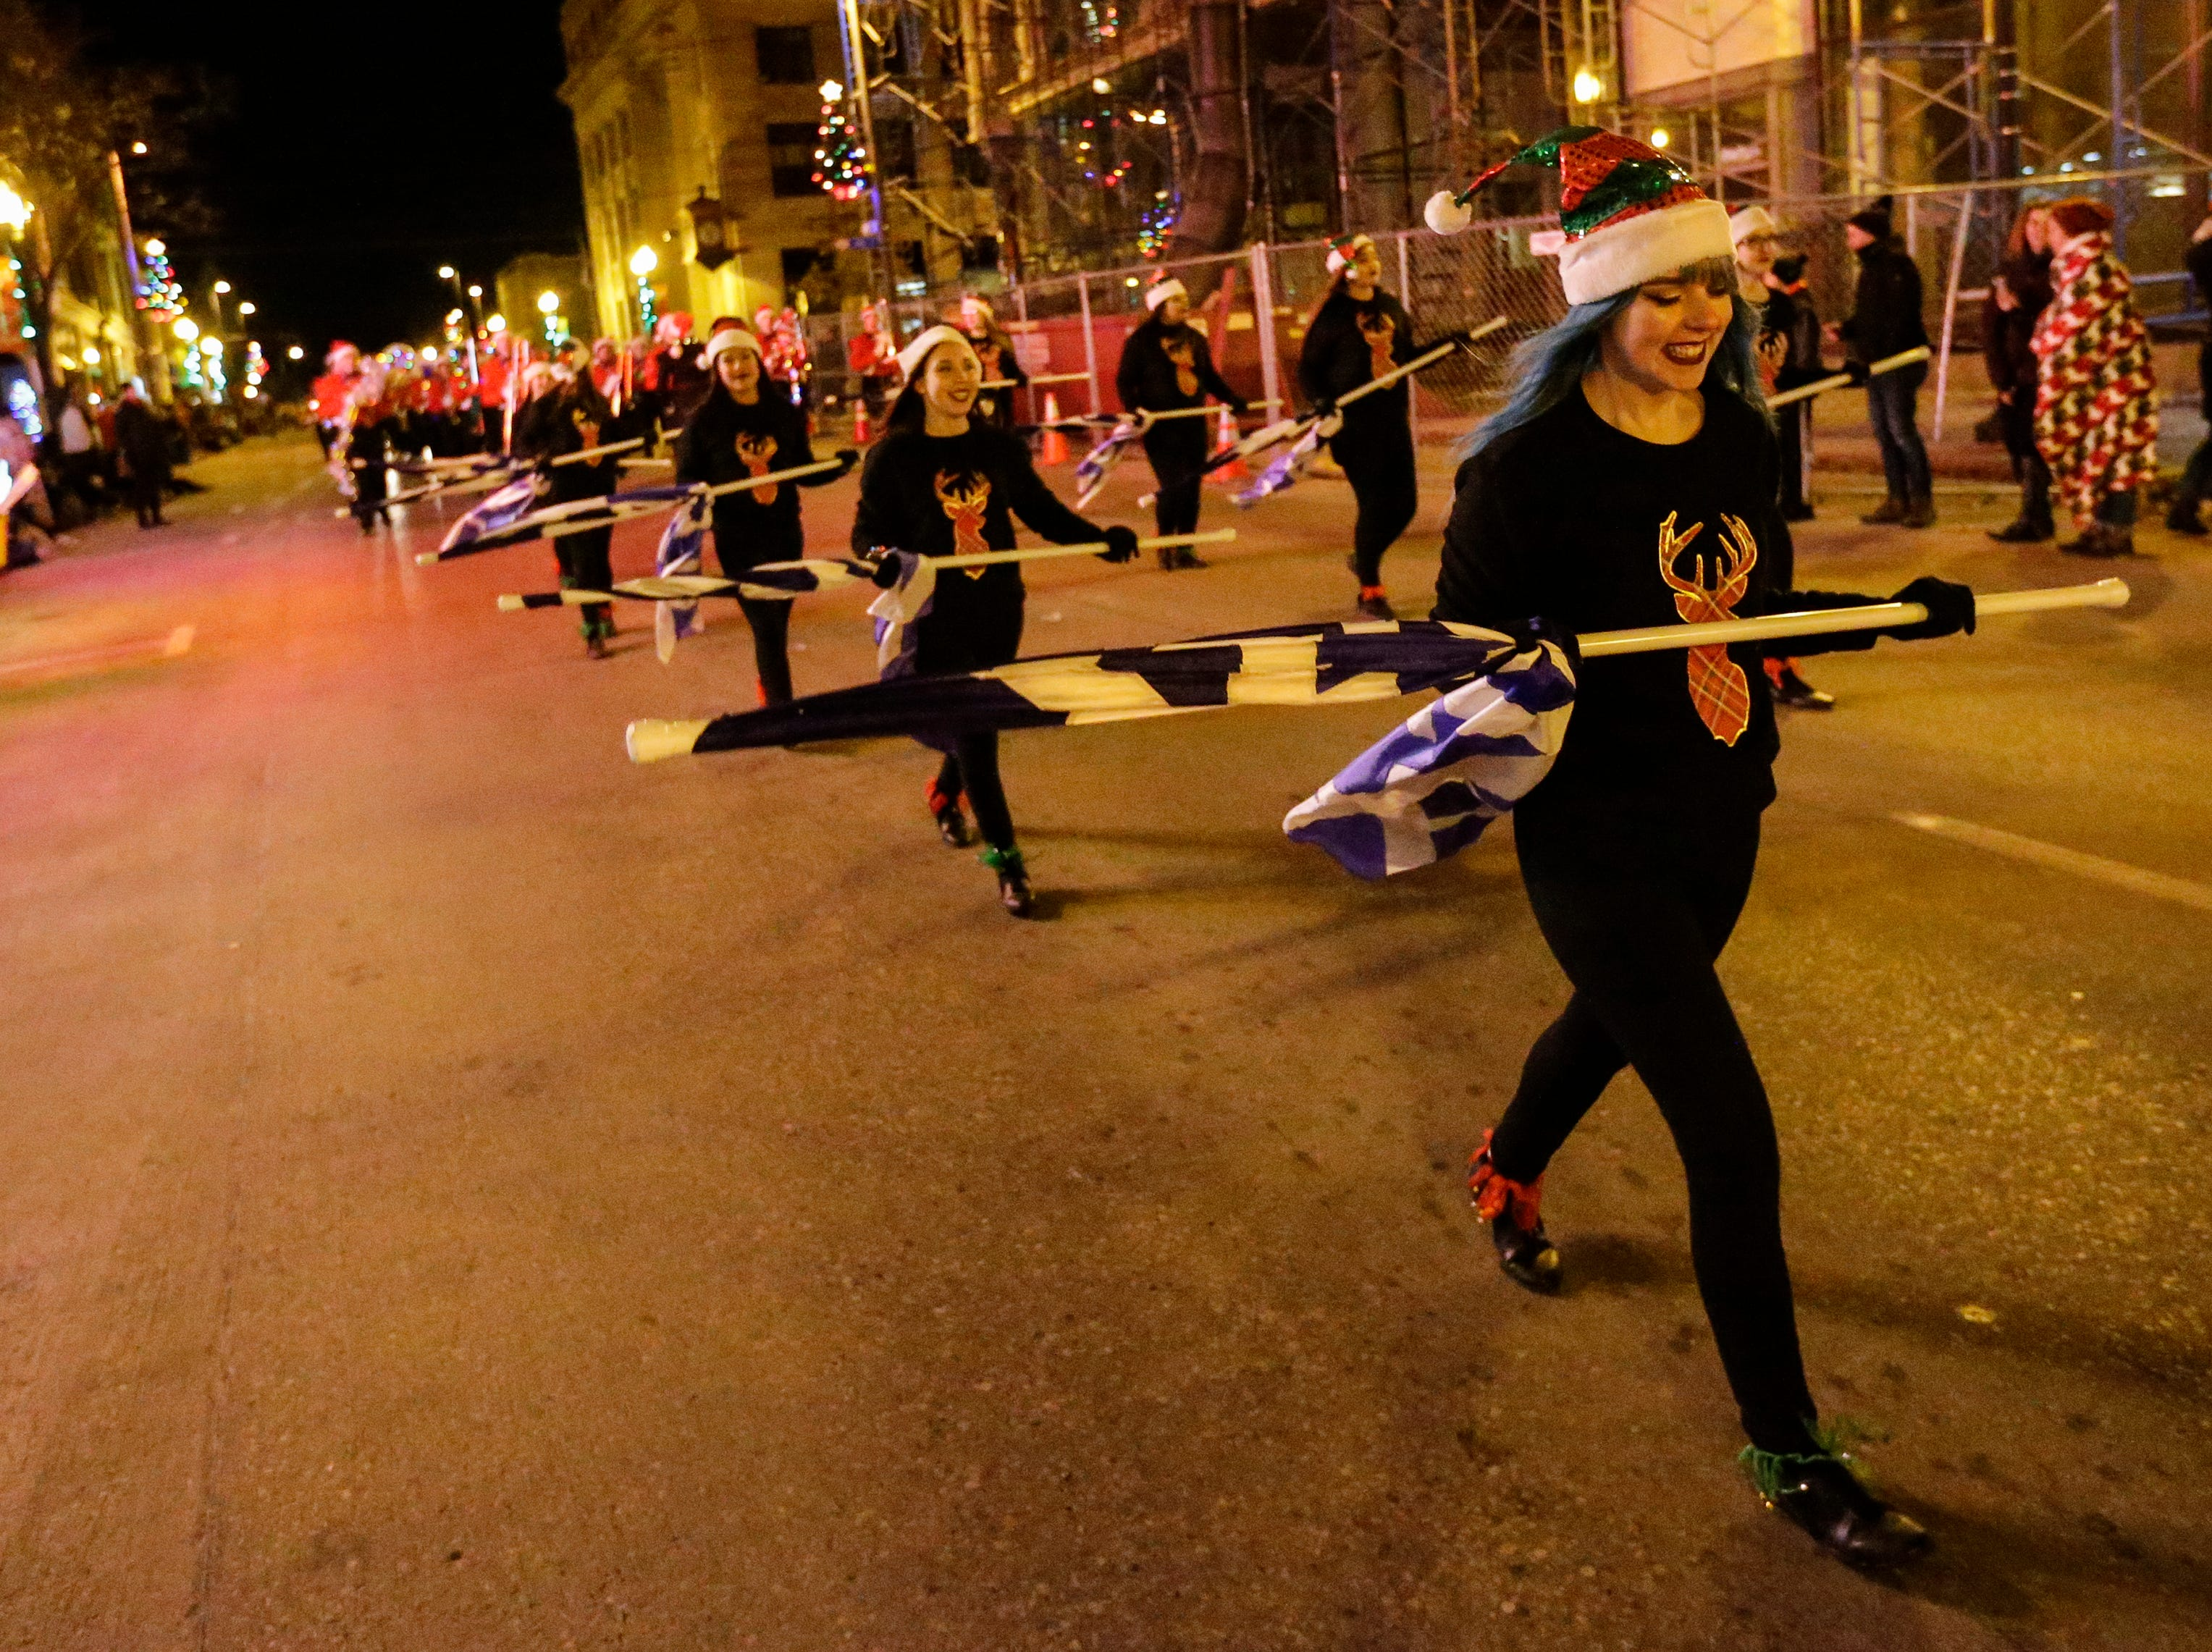 """The 30th Annual Lakeshore Holiday Parade Wednesday, November 21, 2018, in Manitowoc, Wis. This year's theme was """"Christmas Through the Decades."""" Joshua Clark/USA TODAY NETWORK-Wisconsin"""